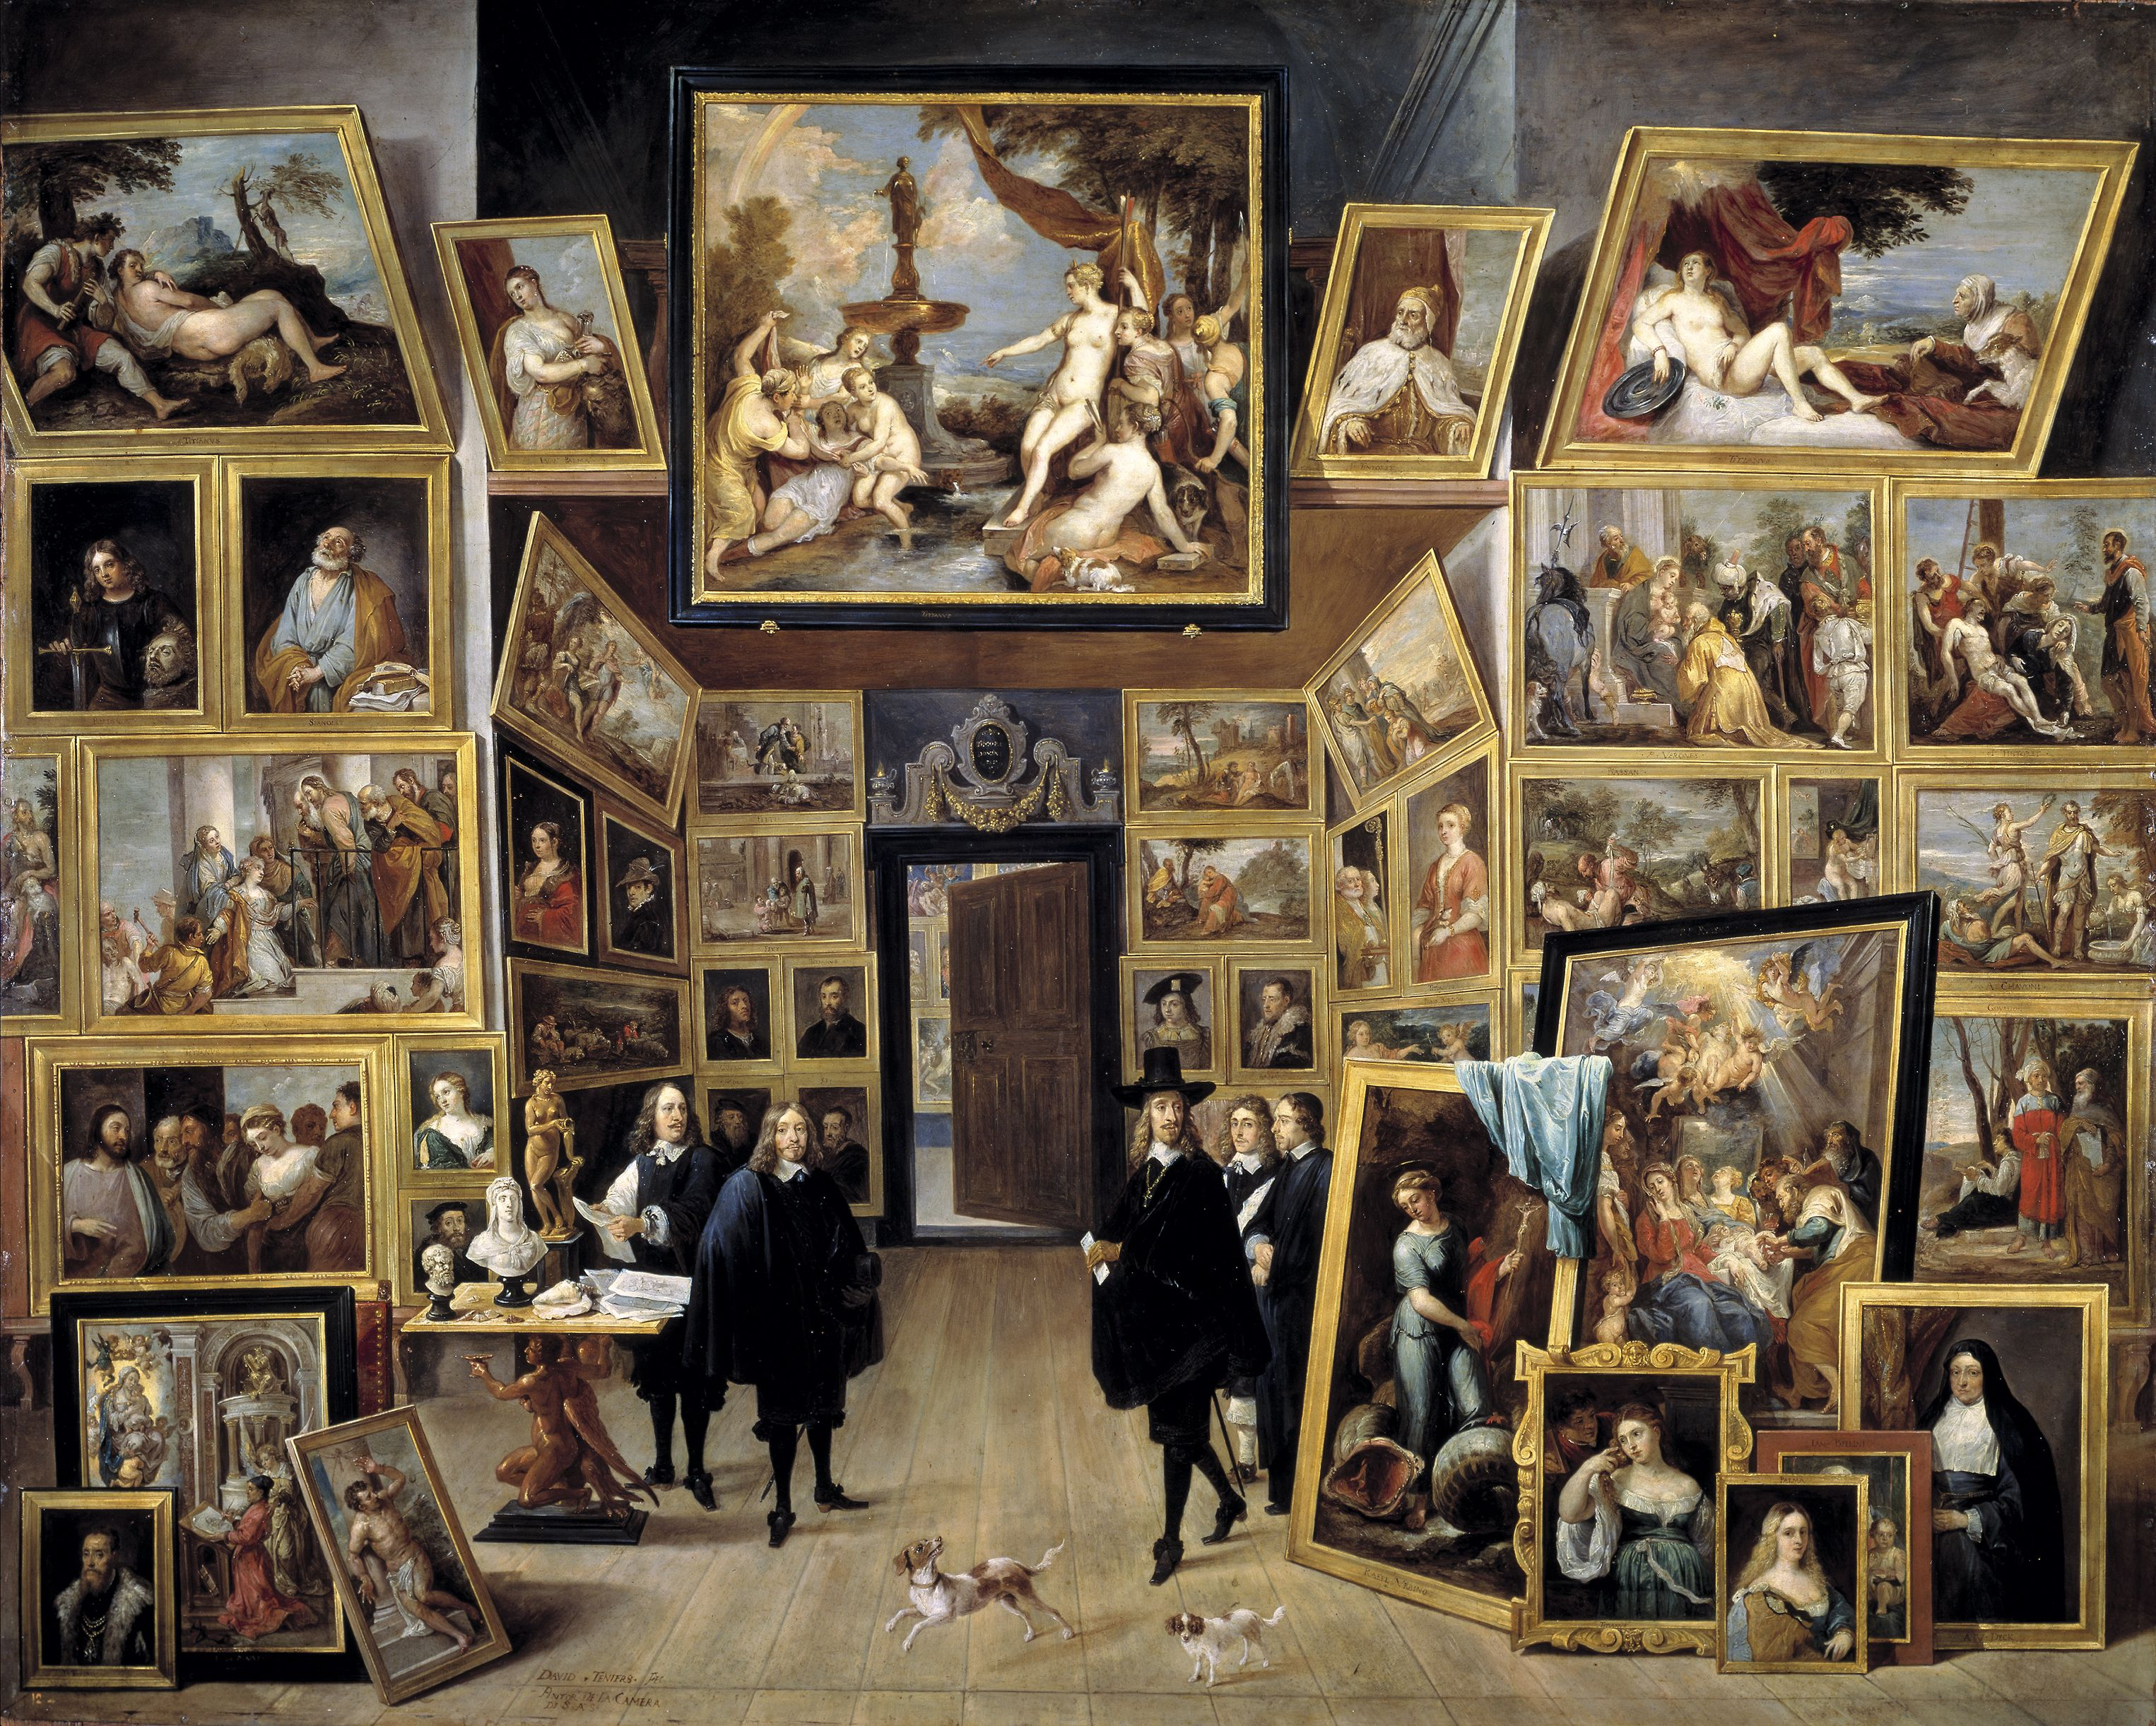 David Teniers the Younger, The archduke Leopold Wilhelm in